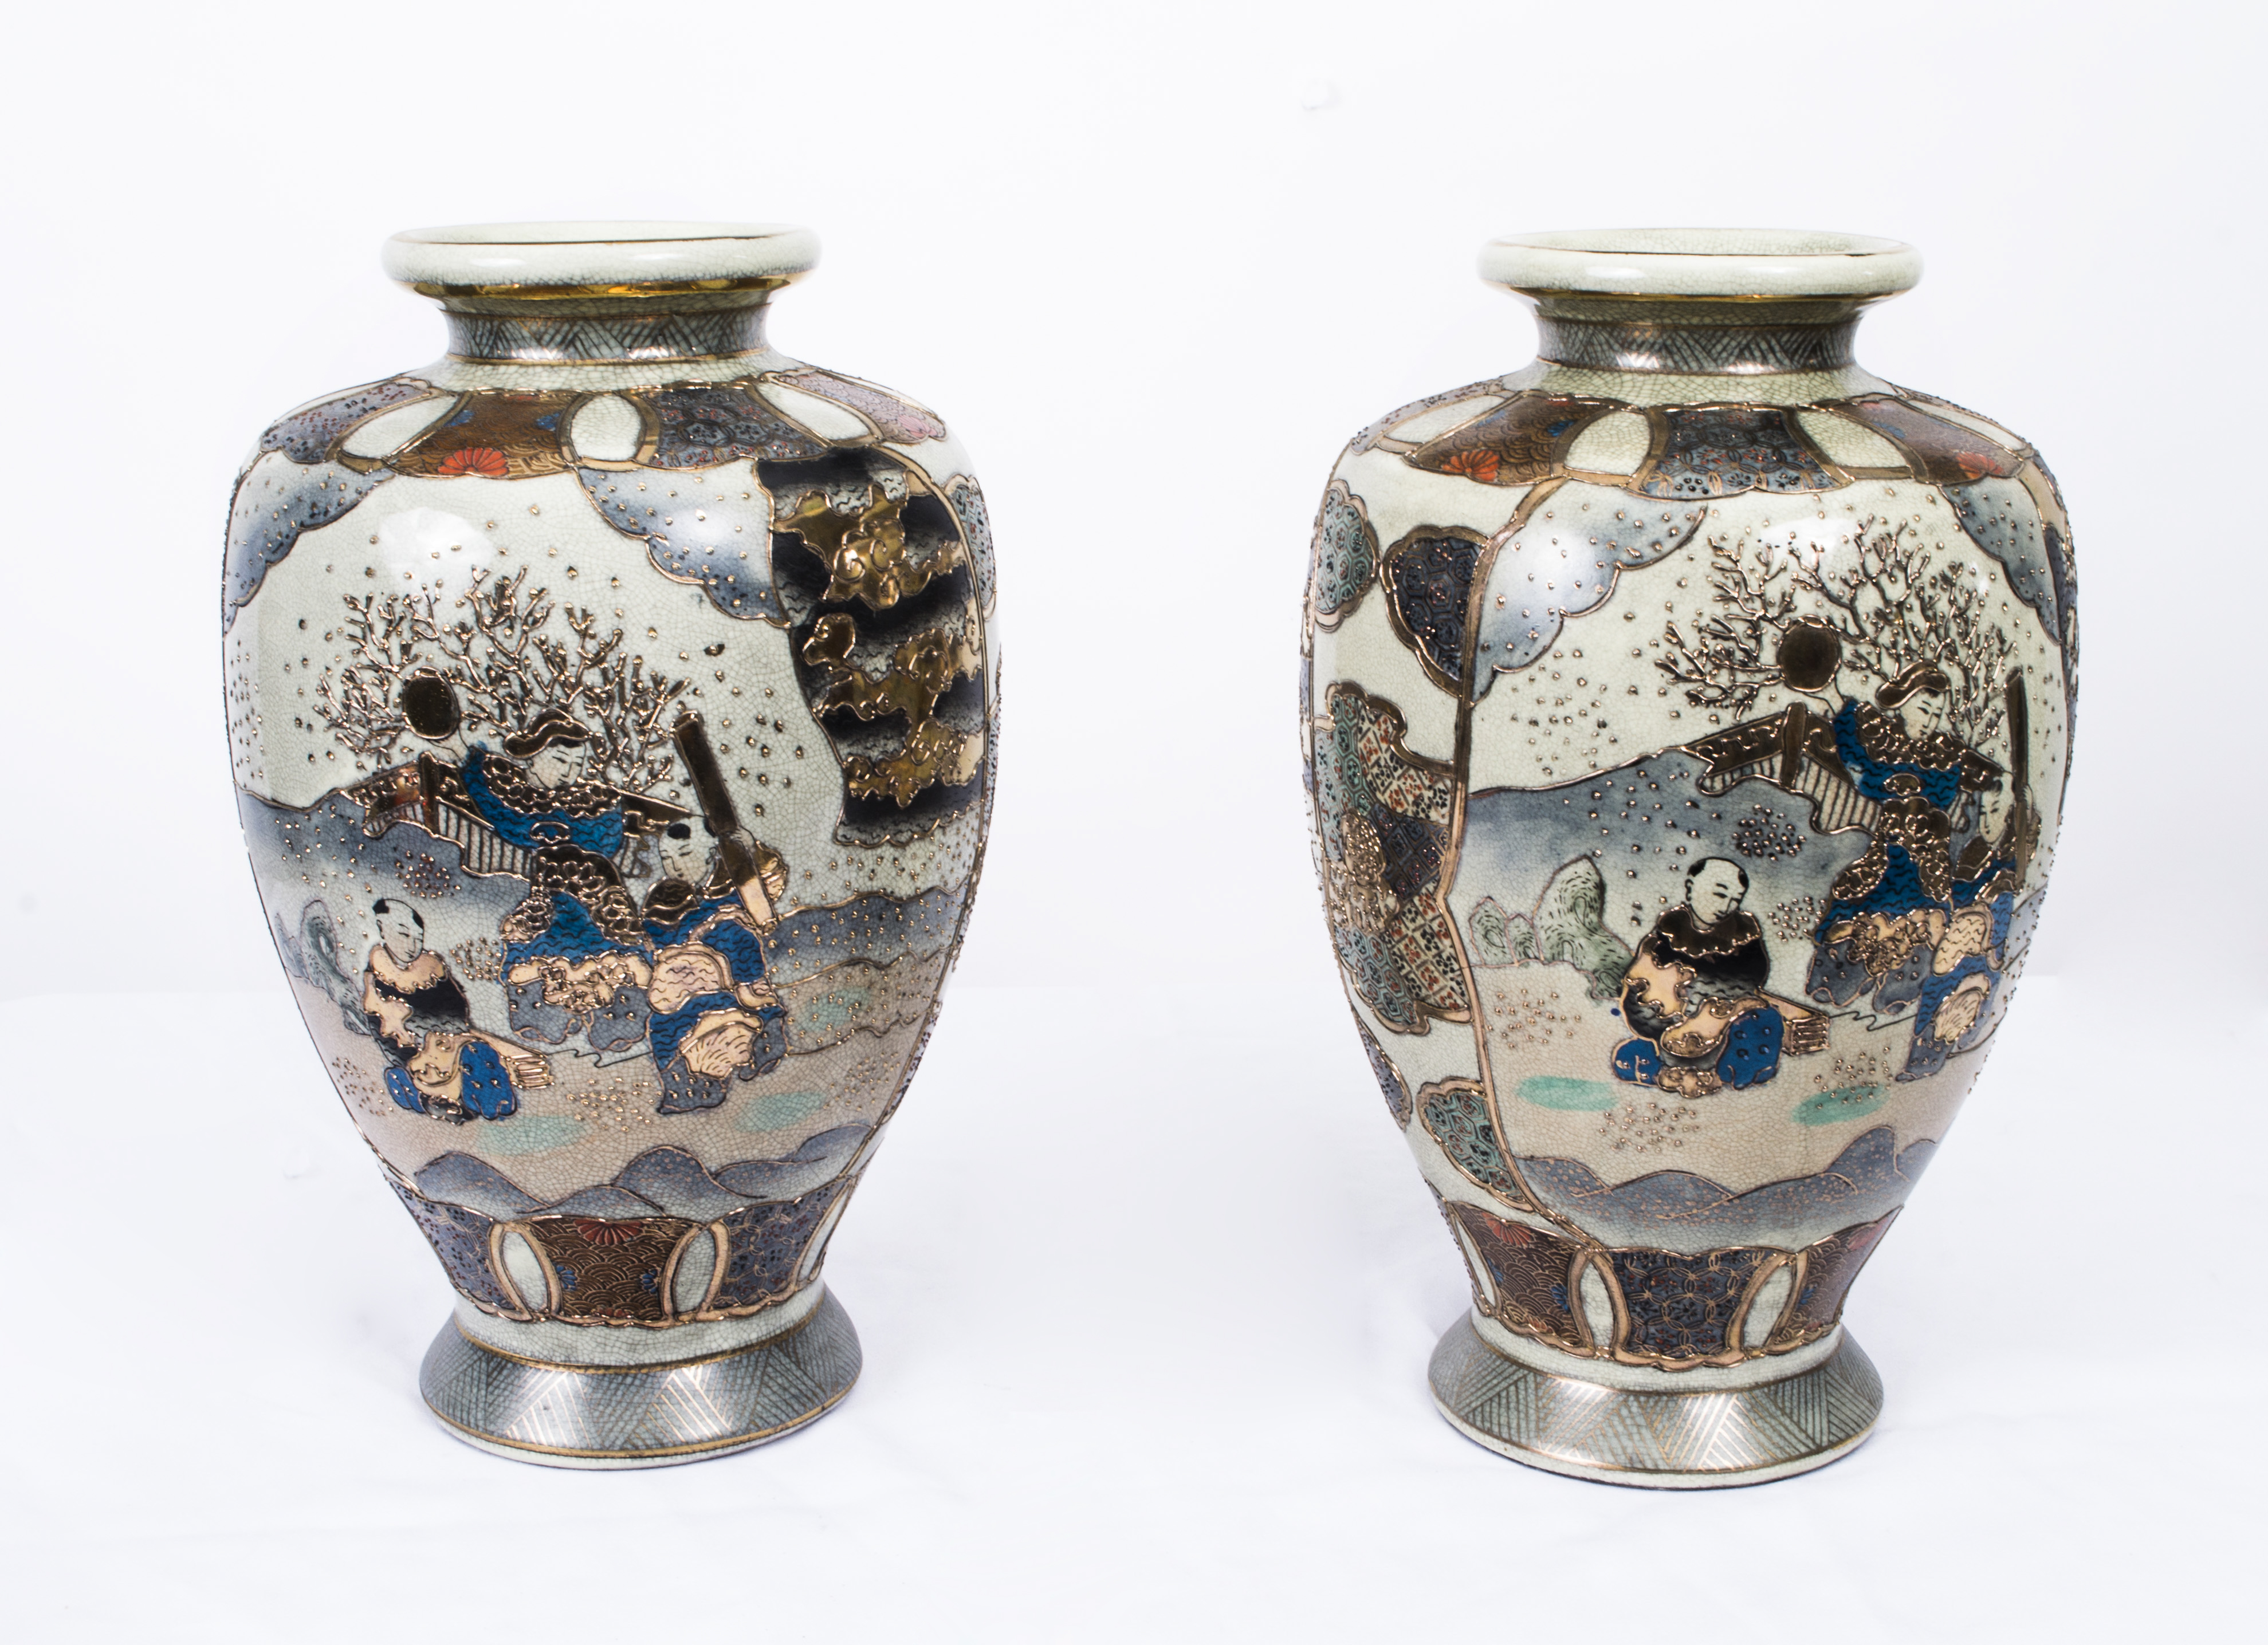 dating satsuma pottery Shop from the world's largest selection and best deals for 1850-1899 antique japanese vases 1860, thus dating it to of japanese satsuma pottery c.